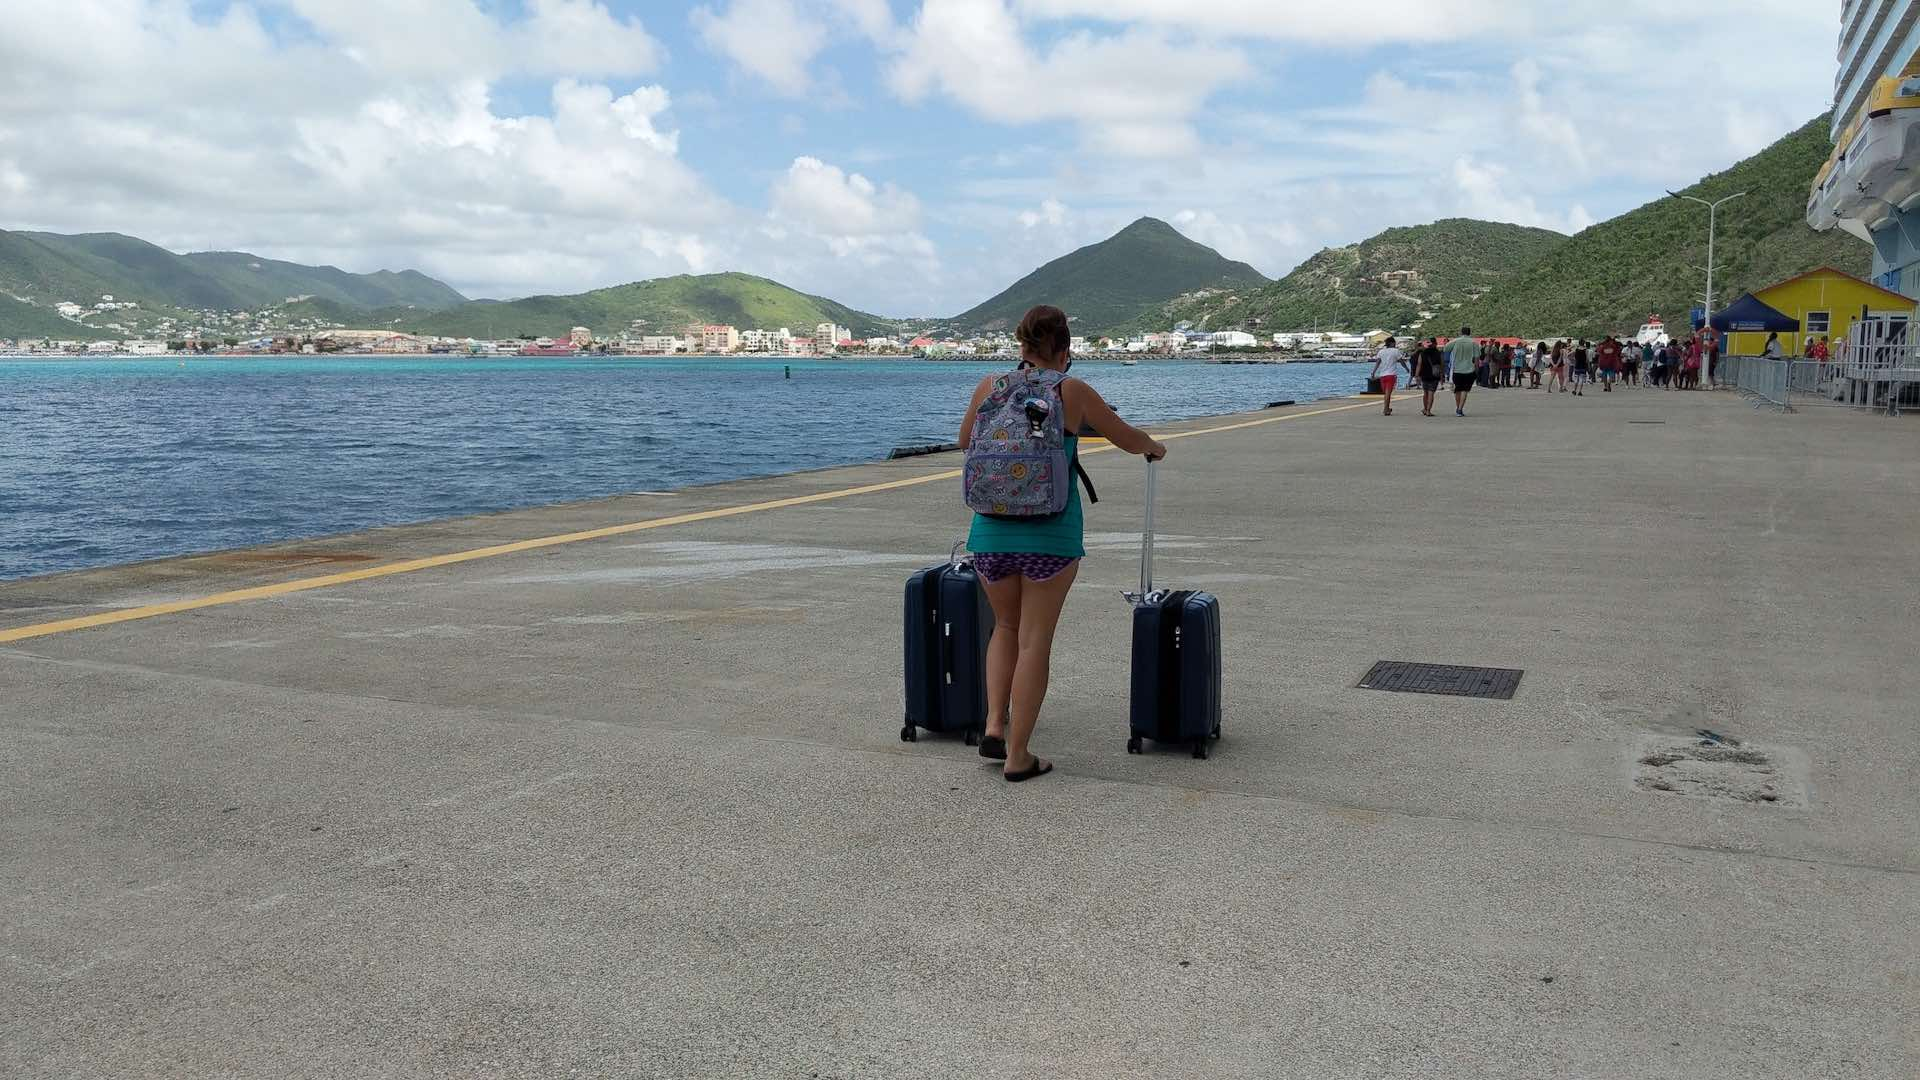 Follow the Journey of 200lbs of School Supplies to the Island of St. Maarten aboard Oasis of the Seas